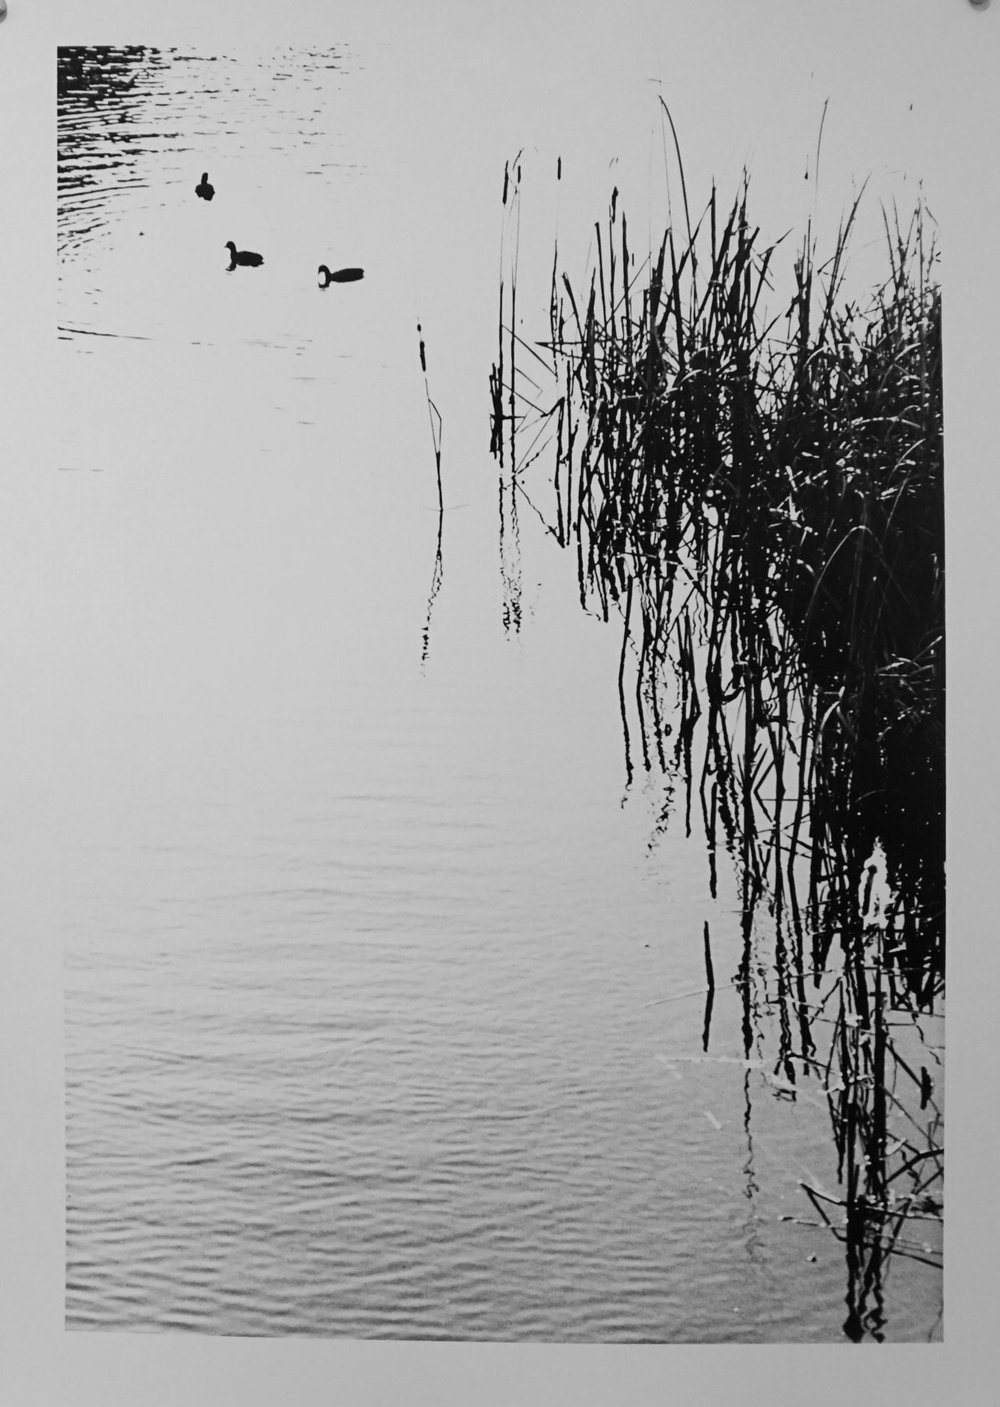 60. Richard Woldendorp, 'Swan River, Perth WA', BW23a, taken and printed in 1959, Vintage Print